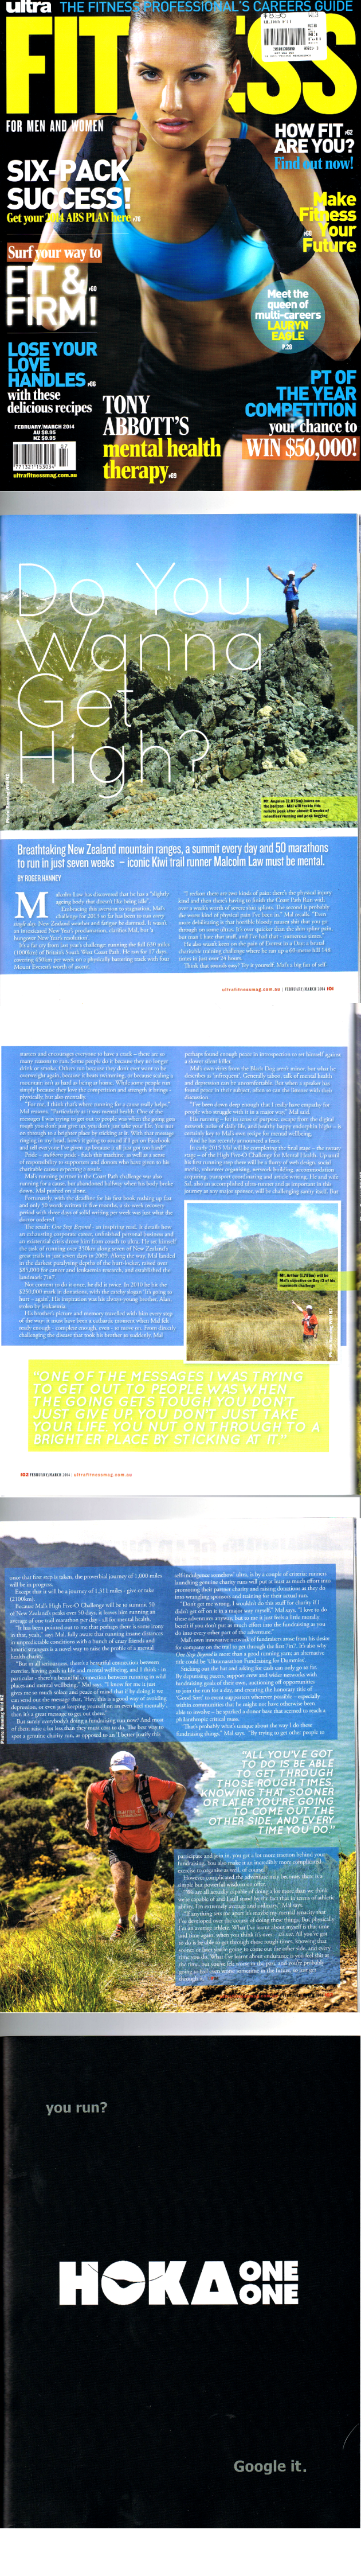 UltraFit Malcolm Law Story Jan-Feb 2014 100 png